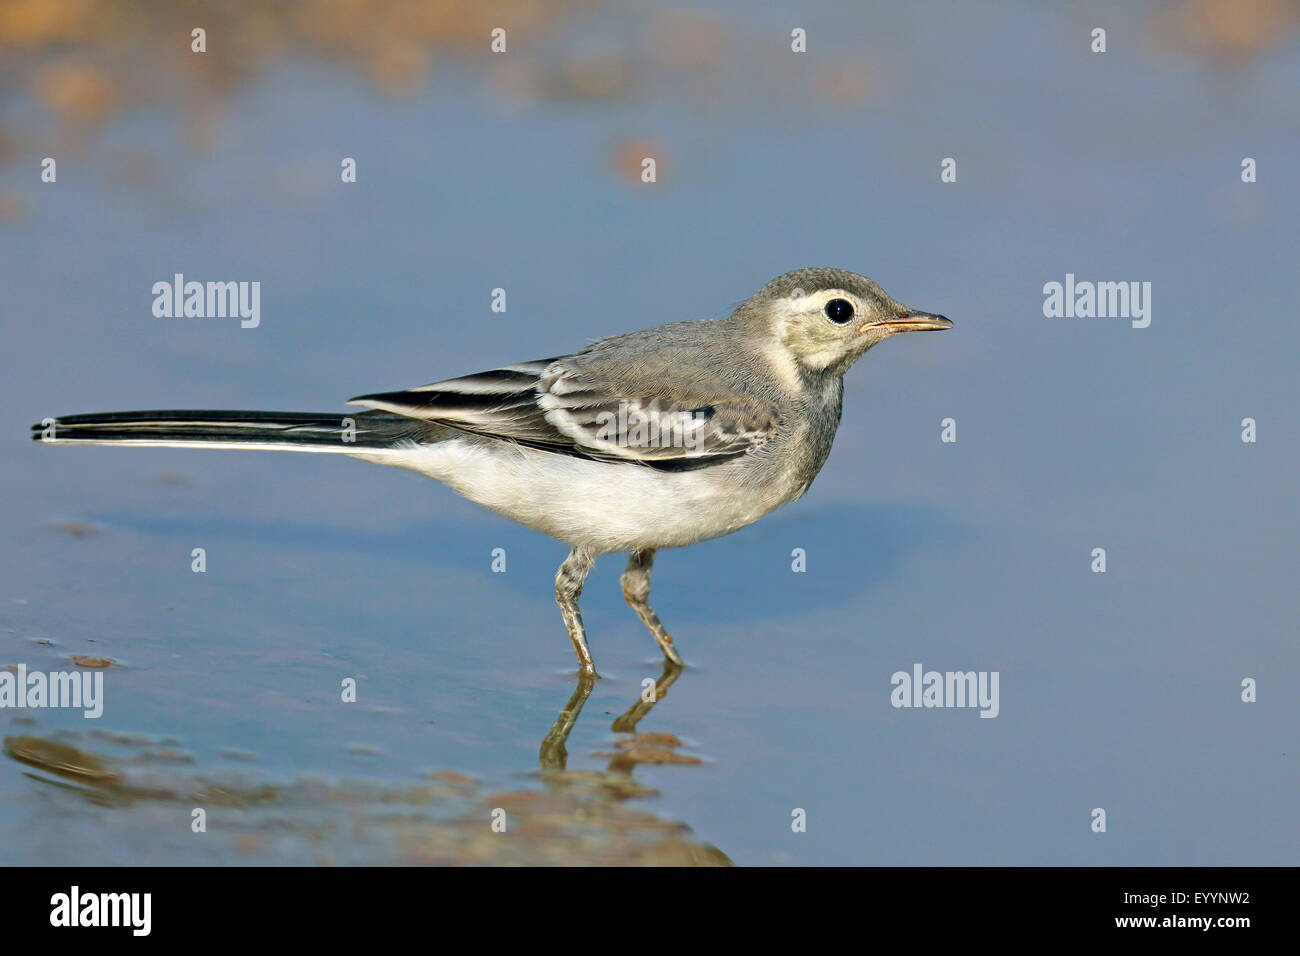 pied wagtail (Motacilla alba), immature pied wagtail stands in shallow water, Bulgaria, Kaliakra - Stock Image